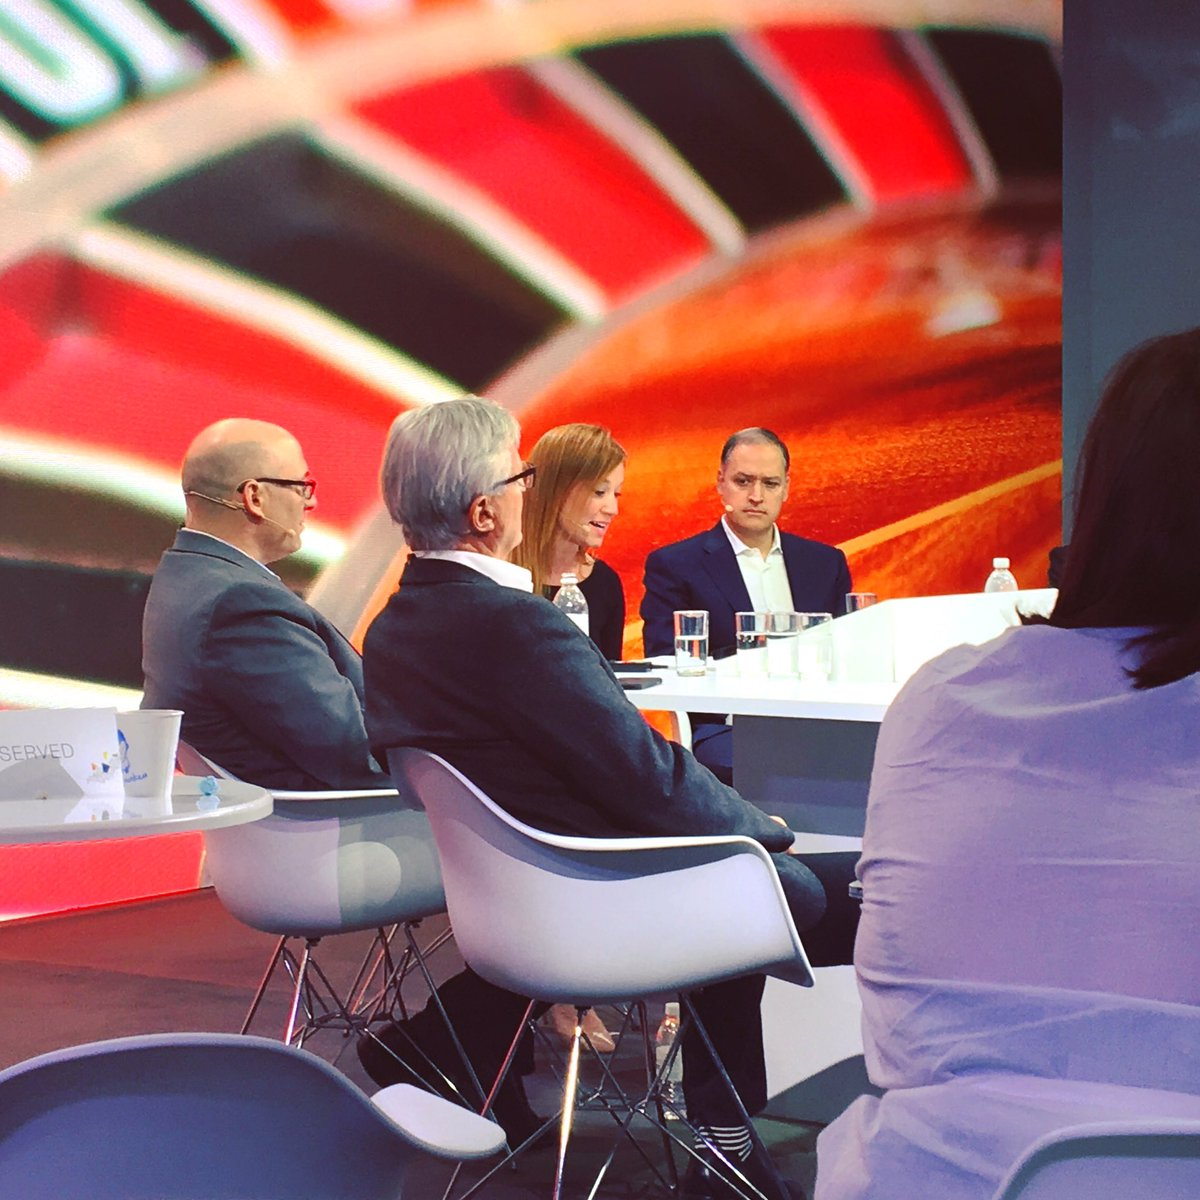 panel on #fintech investment strategies with @KPMG&#39;s @IP23E. @Innotribe @Sibos #sibos  http:// kpmg.com/fintechreport  &nbsp;   #kpmgfintech #cvc #vc<br>http://pic.twitter.com/As1hmP40Bt